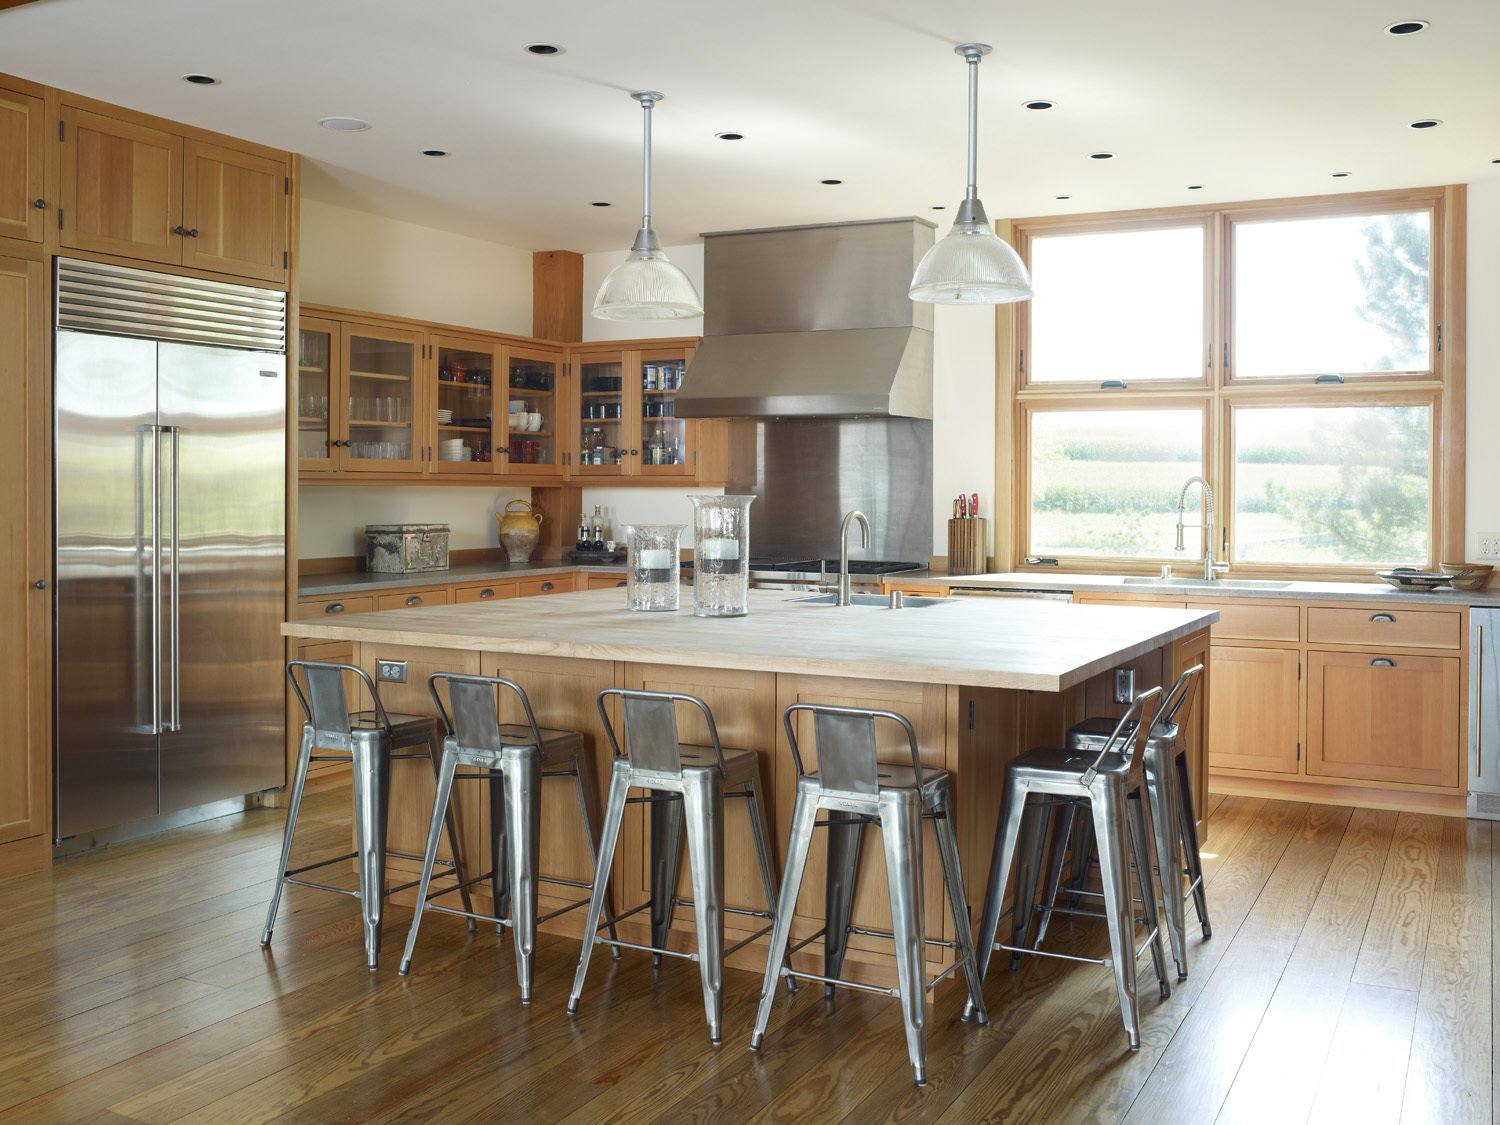 The homeowners needed a kitchen that could hold the 20 or so friends and family members they usually host on holidays and reunions. The kitchen island—which features a countertop of recycled paper and cement from Squak Mountain Stone—can easily accommodate plenty of Tolix aluminum bar stools. Custom Douglas fir cabinetry frames a Miele dishwasher, Sub Zero refrigerator, Blanco sink, and a Wolf oven with a Vent-A-Hood overhead.